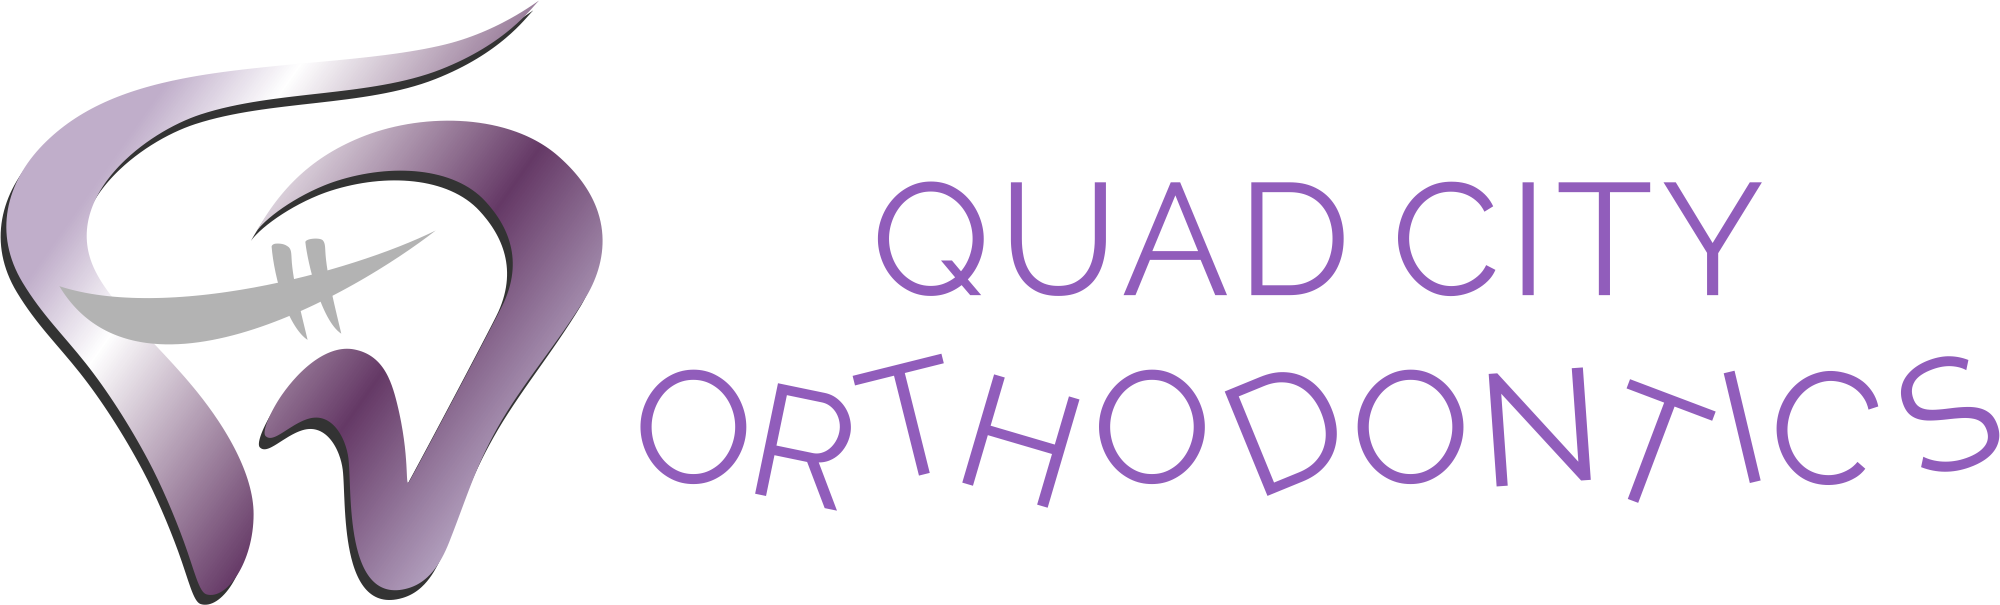 Quad City Orthodontics